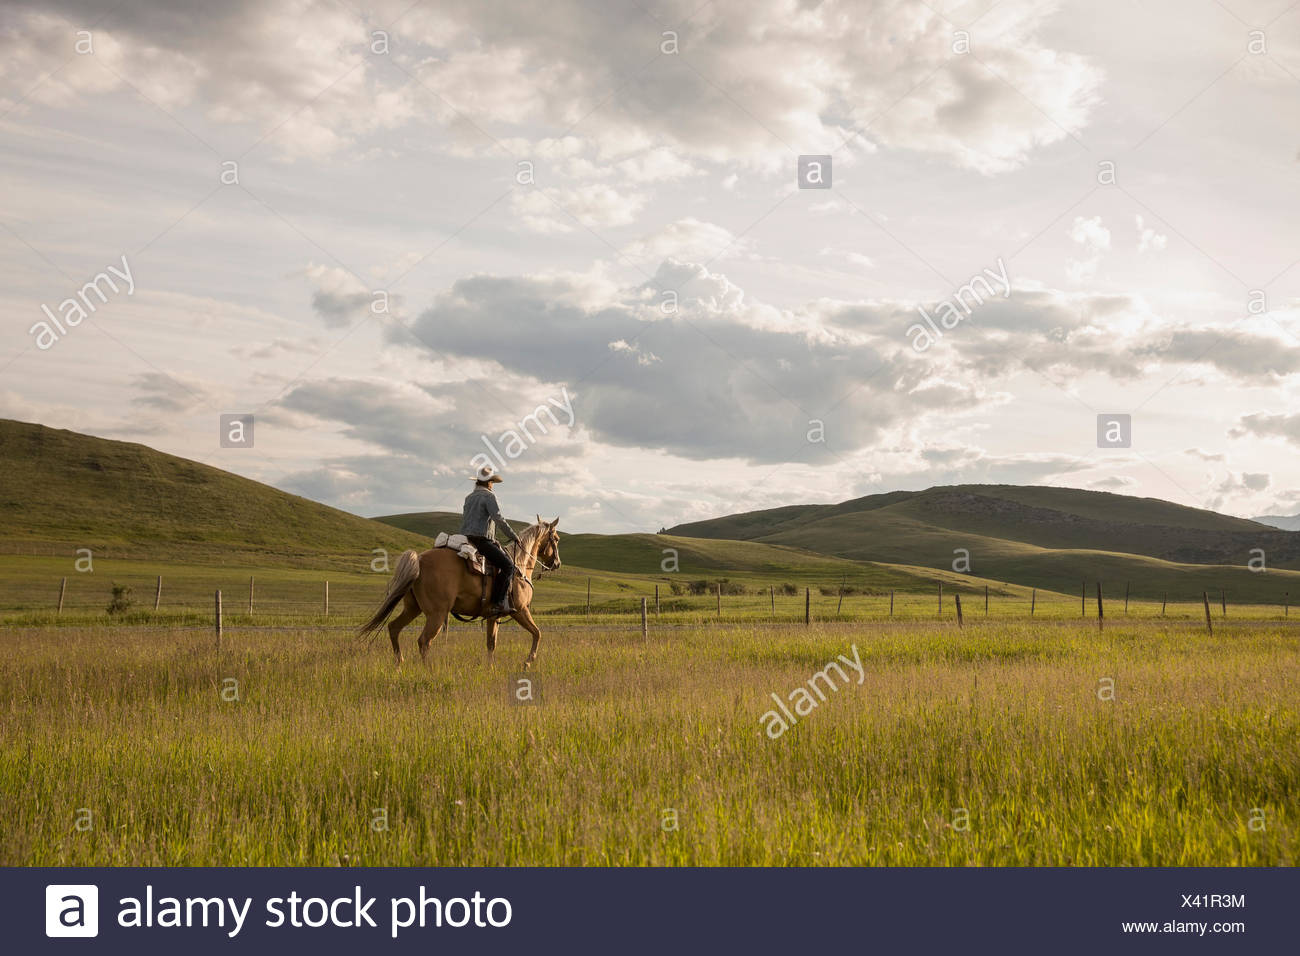 Female rancher galloping horseback in remote sunny field - Stock Image